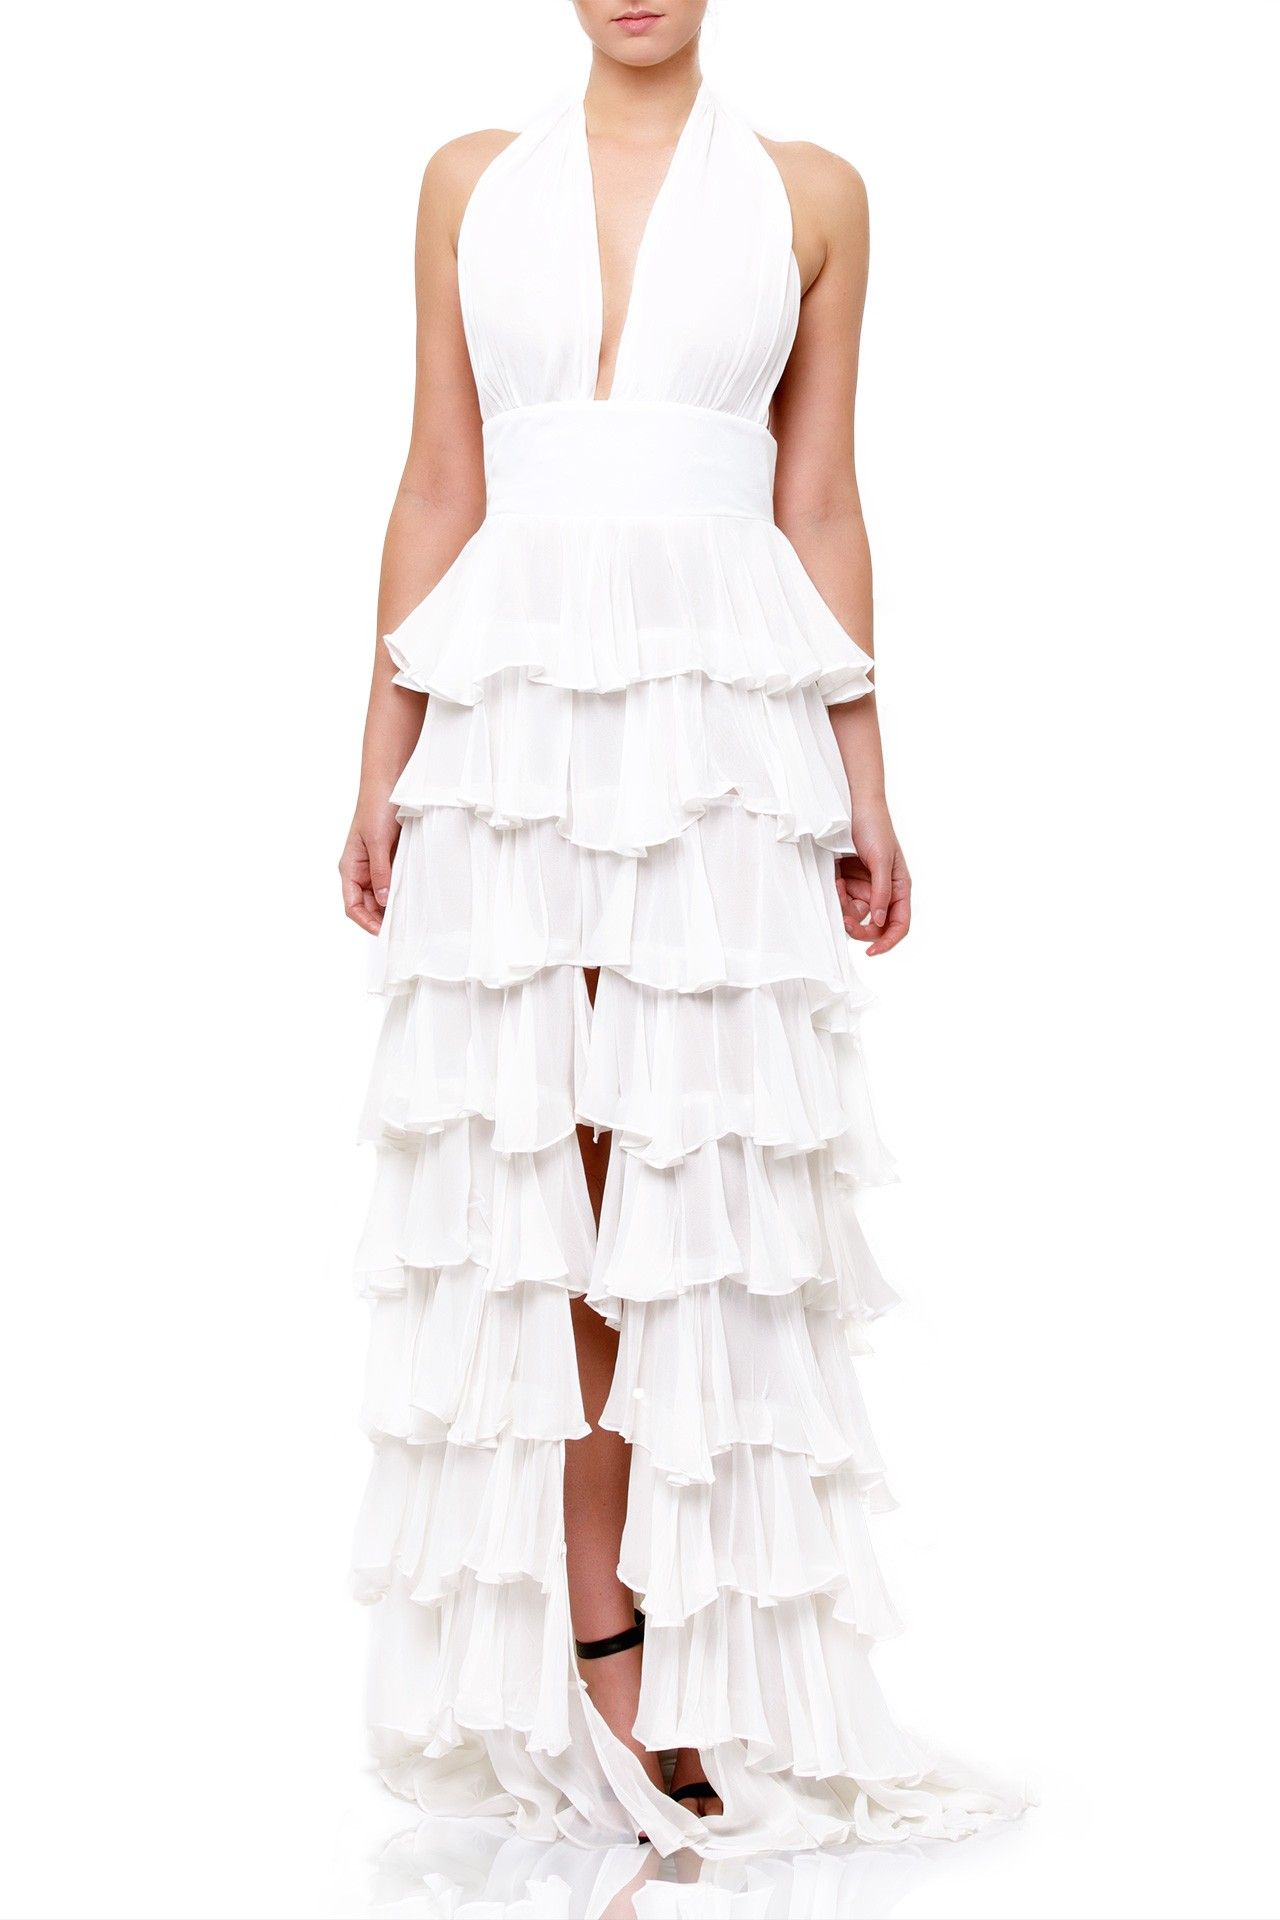 OUT - Trade in your ruffles for a long and silk dress. A versatile staple for day or night.